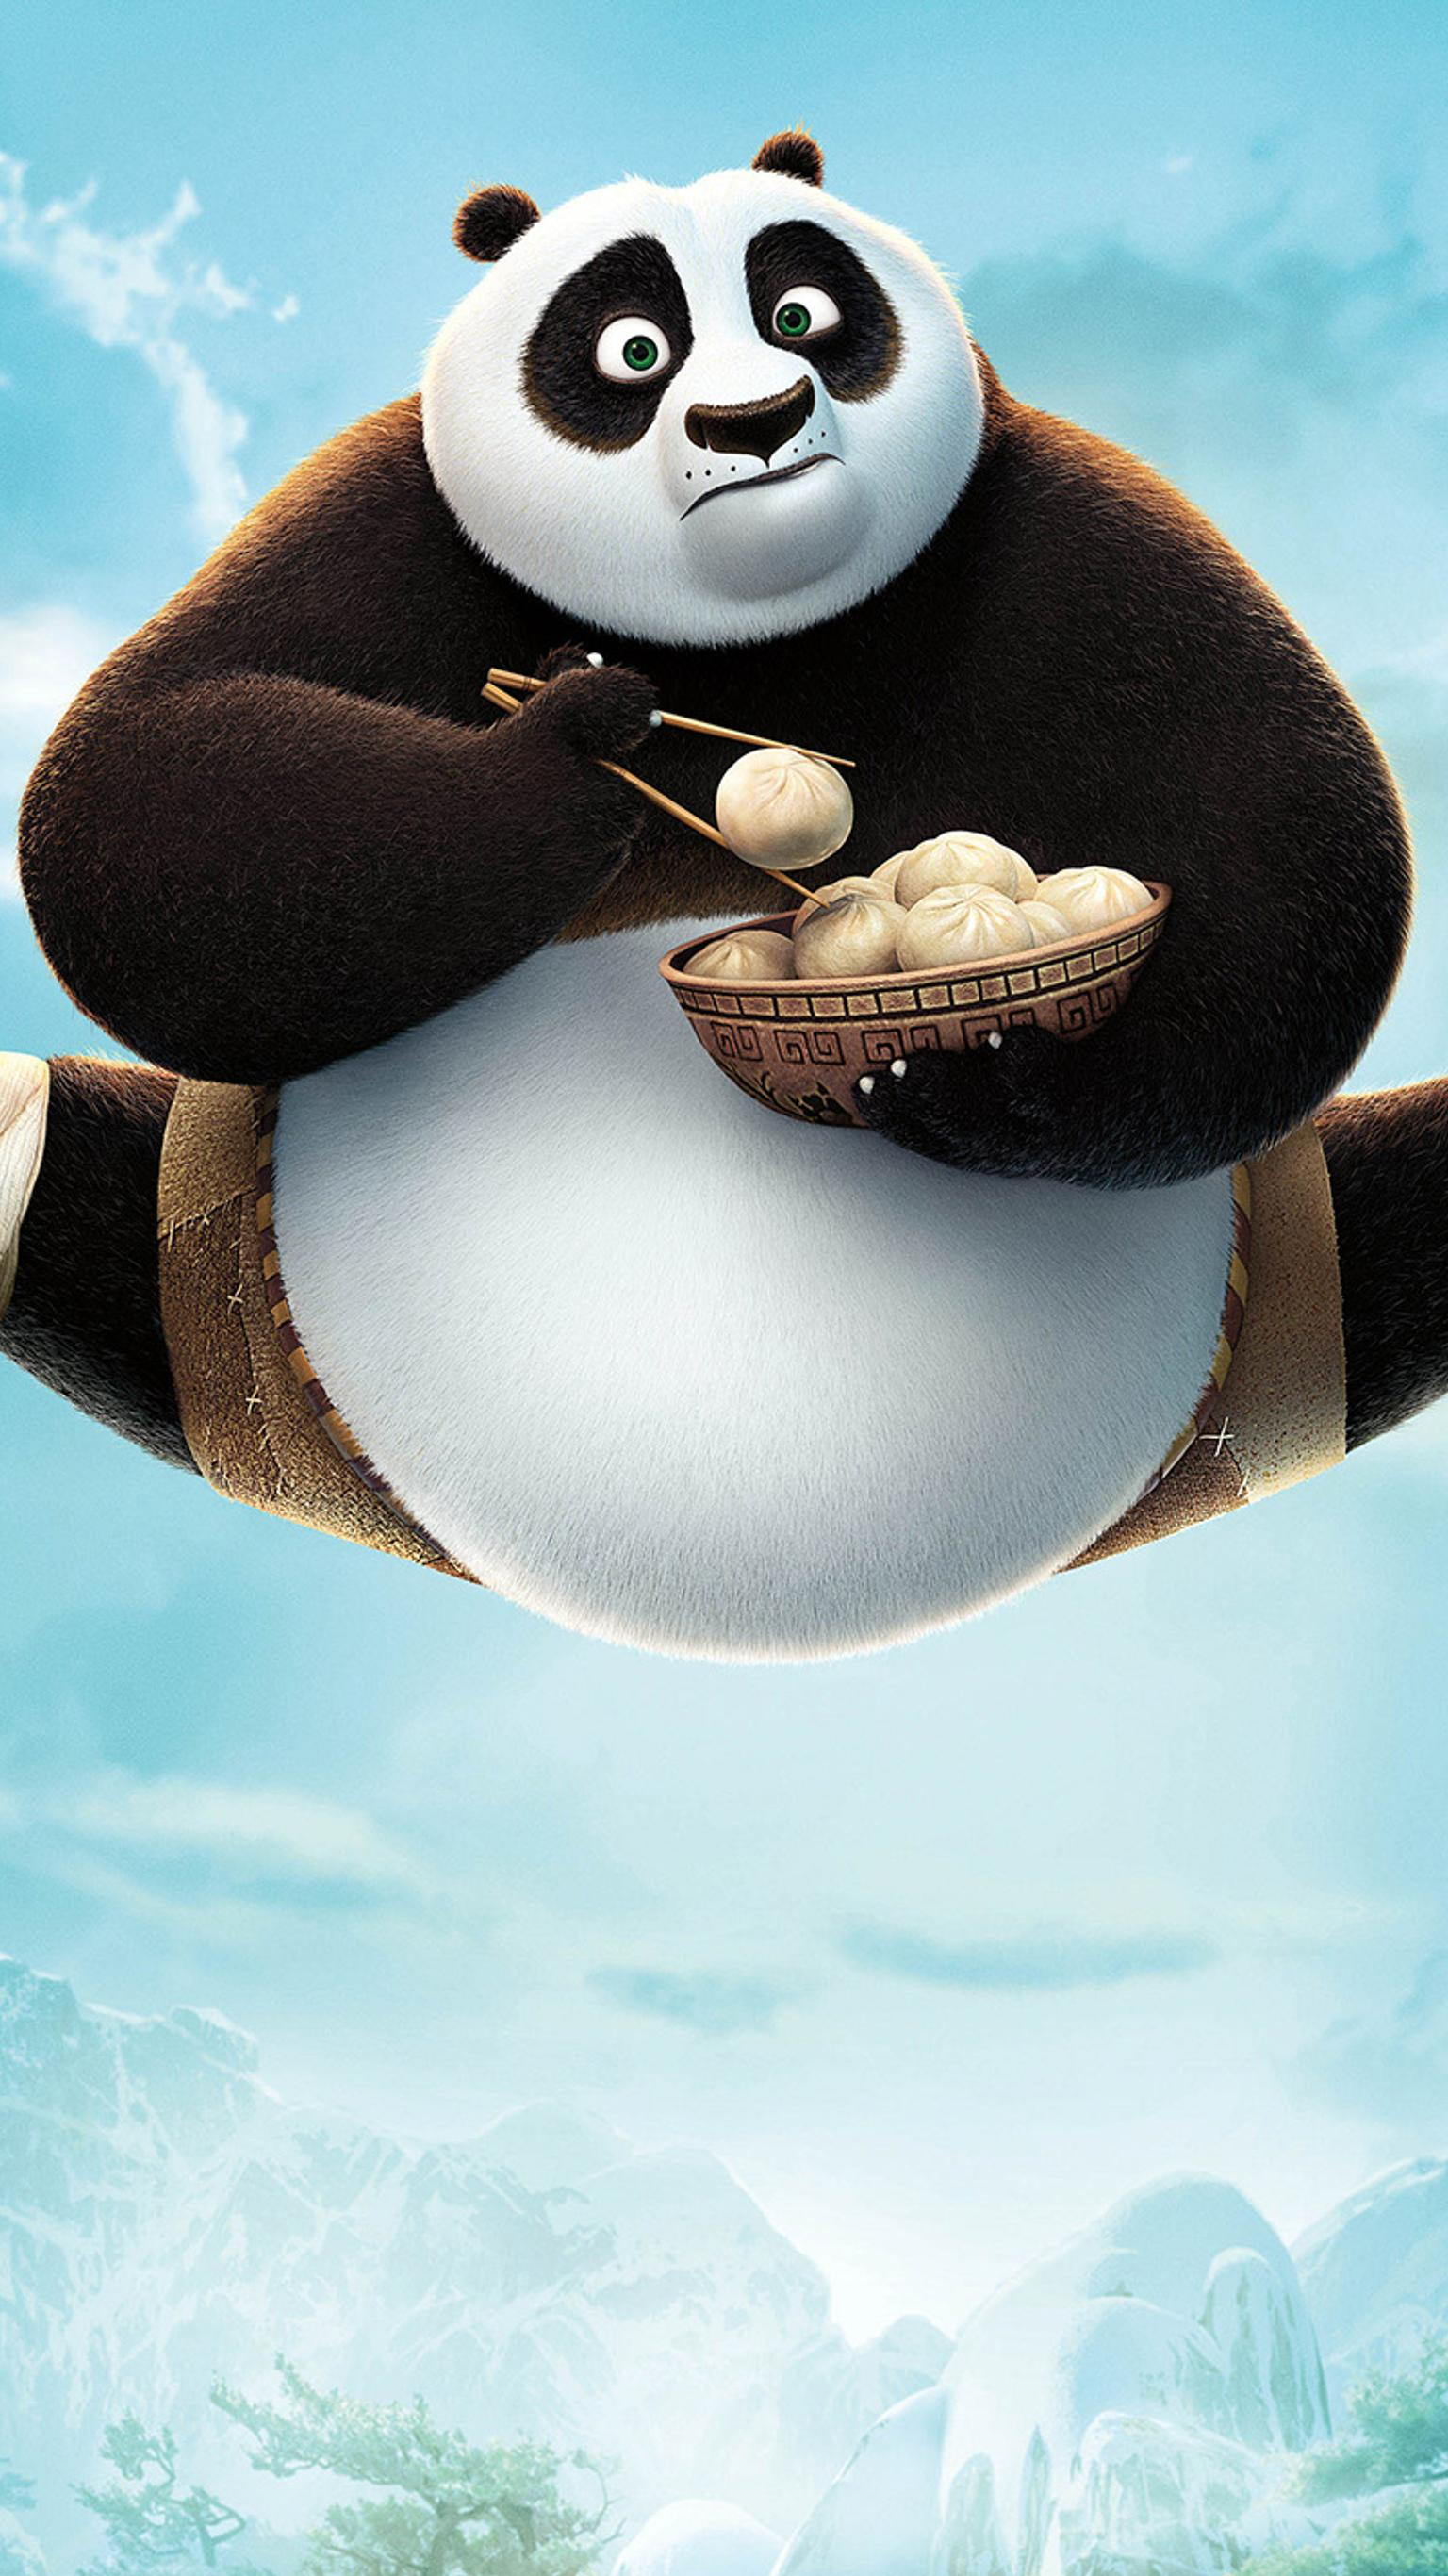 Kung Fu Panda 3 karate-kicks the competition with $41M